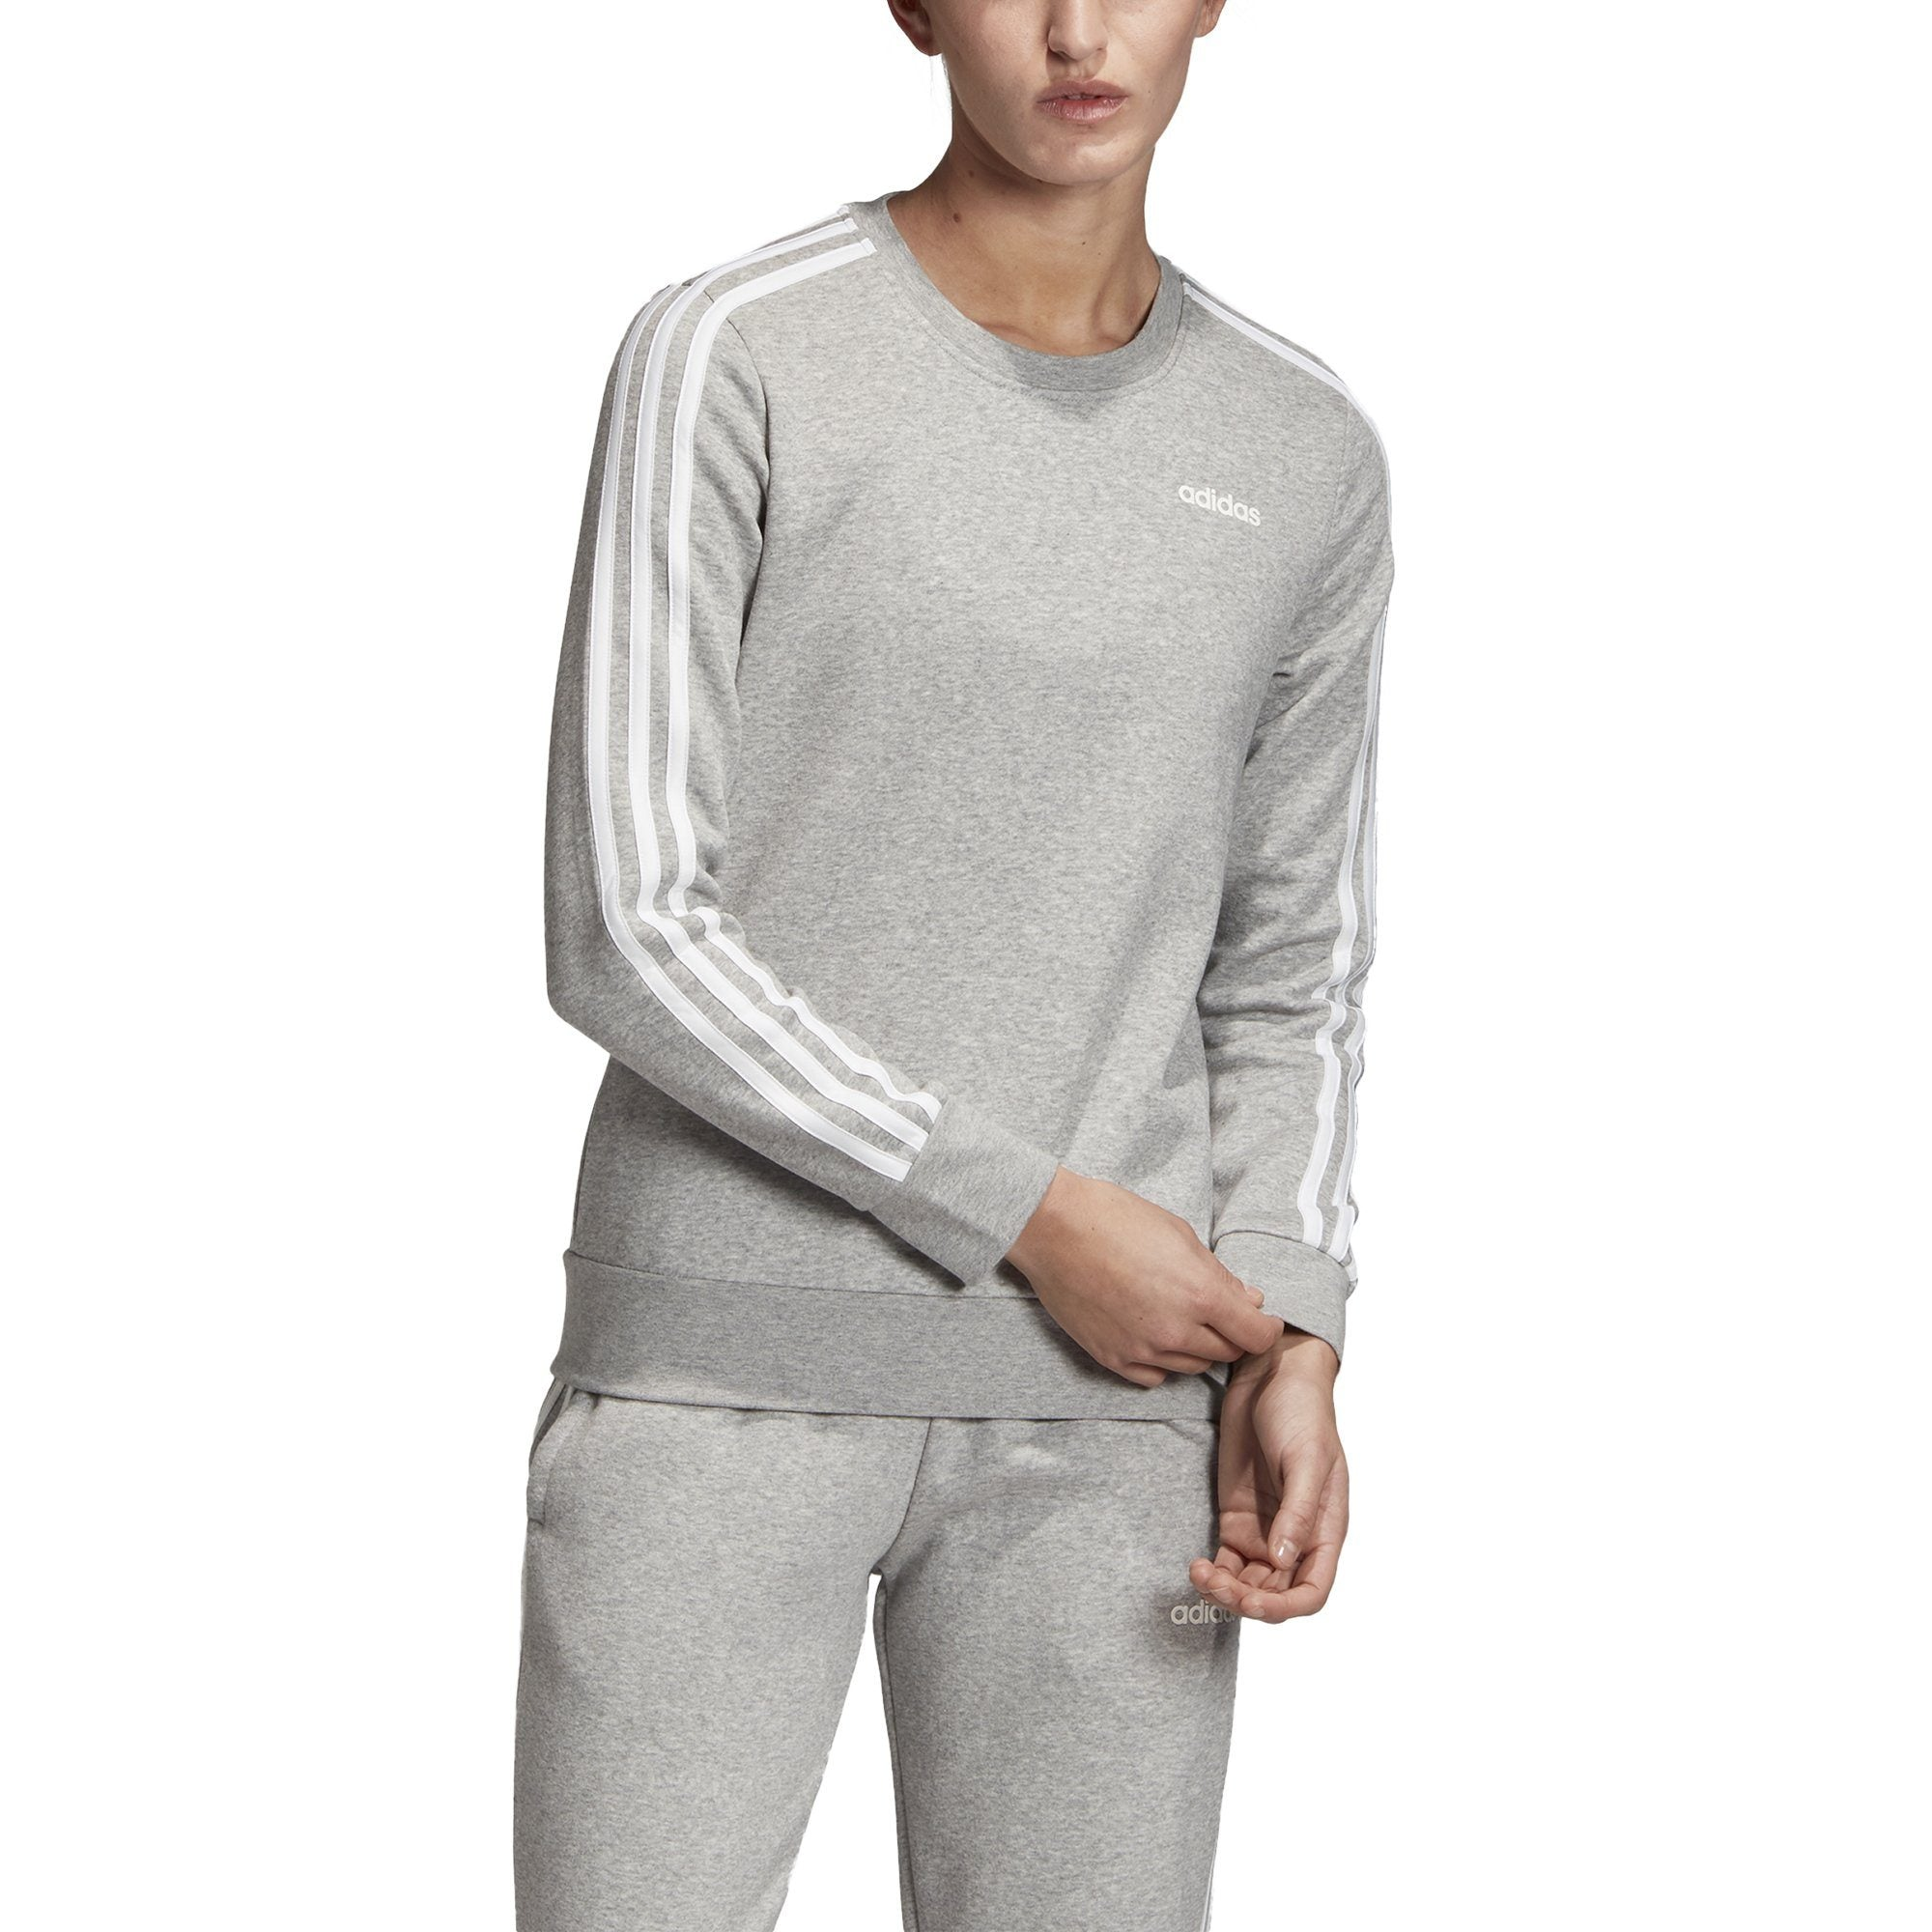 Adidas Womens Essentials 3-Stripes Sweatshirt - Medium Grey Heather/White SP-ApparelFleece-Womens Adidas